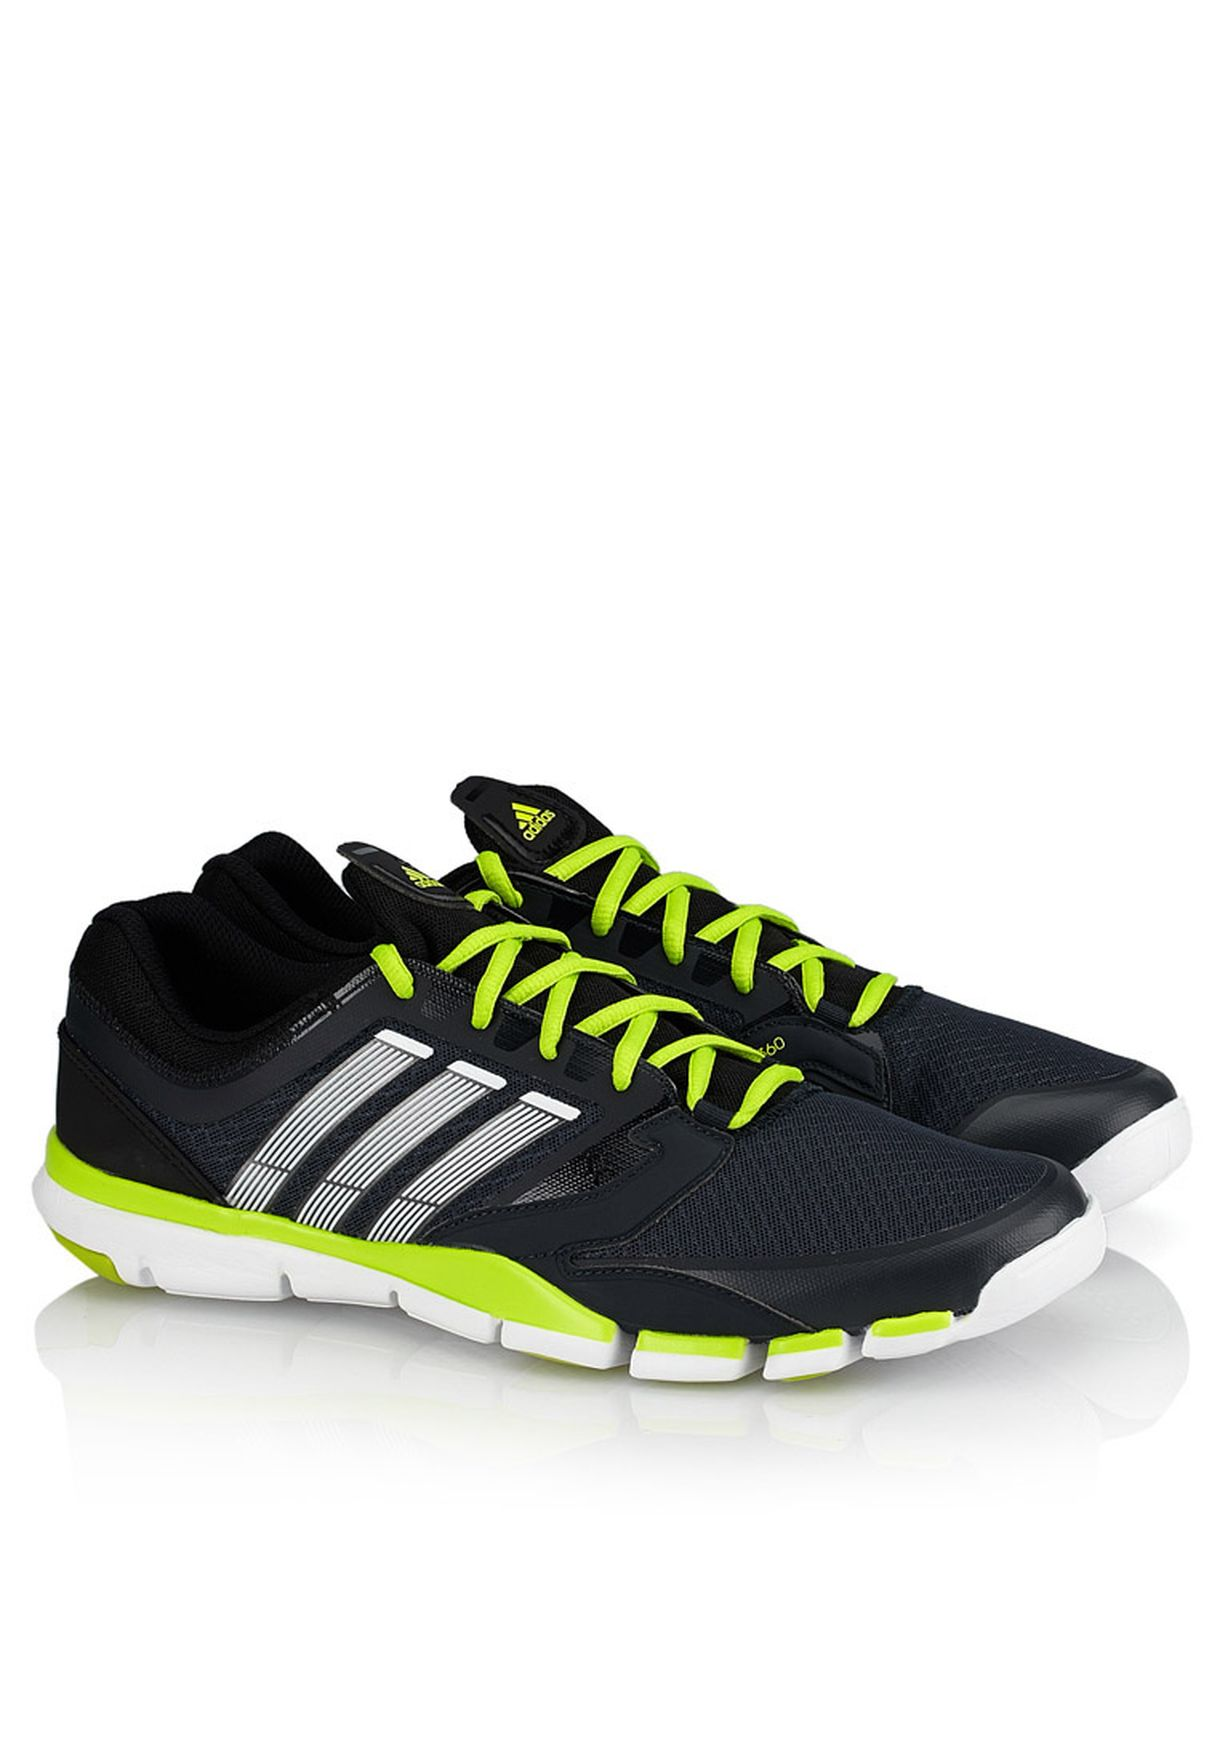 meet 573b6 d768f Shop adidas black Adipure Trainer 360 D67529 for Men in Saudi - AD476SH47ANK